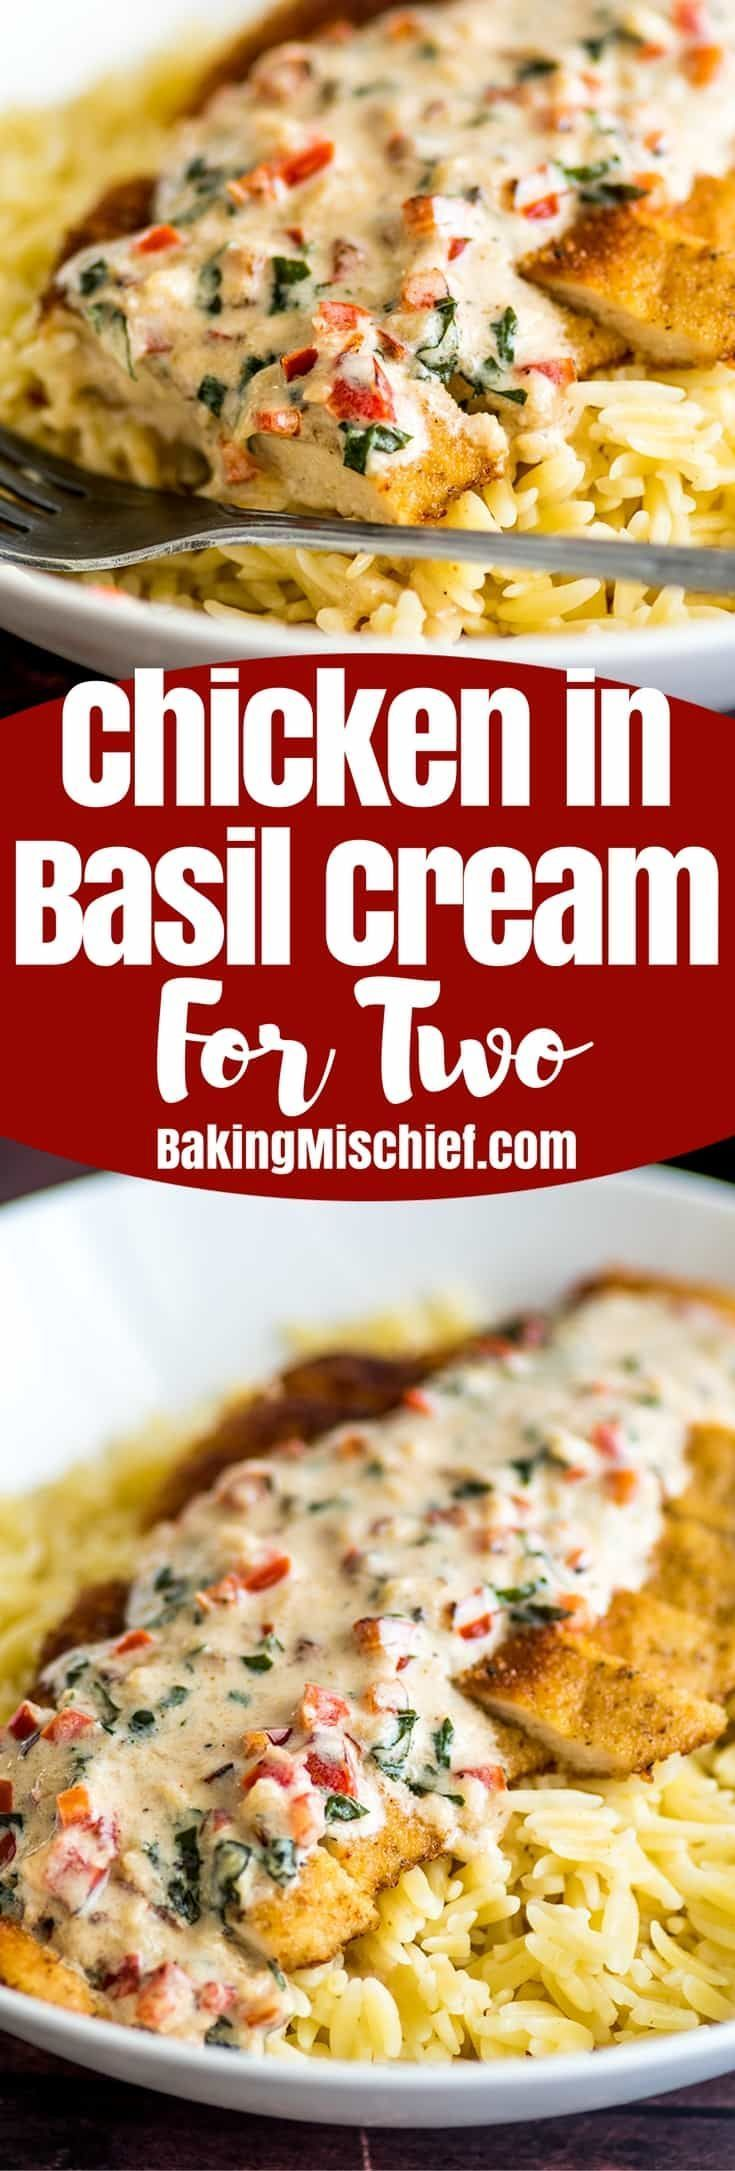 Easy Chicken in Cream Sauce for Two, crispy breaded chicken served over orzo or rice with a two-minute basil and Parmesan cream sauce. | #Chicken | #ChickenDinner | #DinnerForTwo |